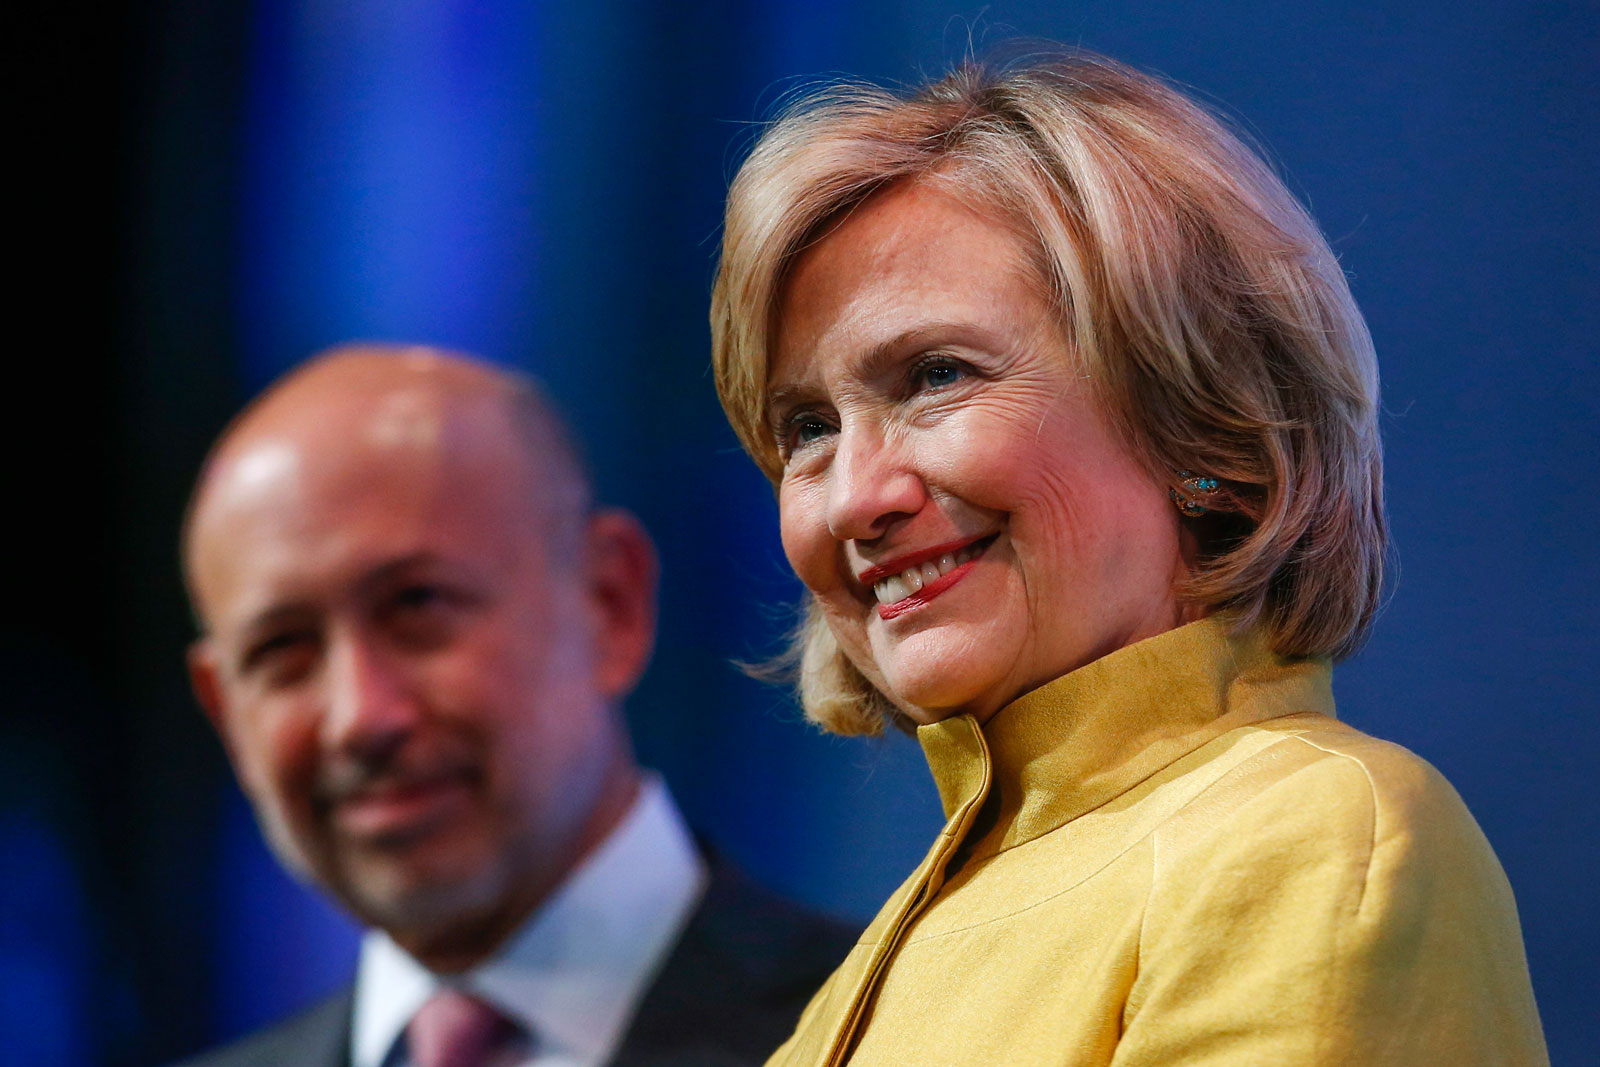 Hillary Clinton with Goldman Sachs CEO Lloyd Blankfein at the Clinton Global Initiative